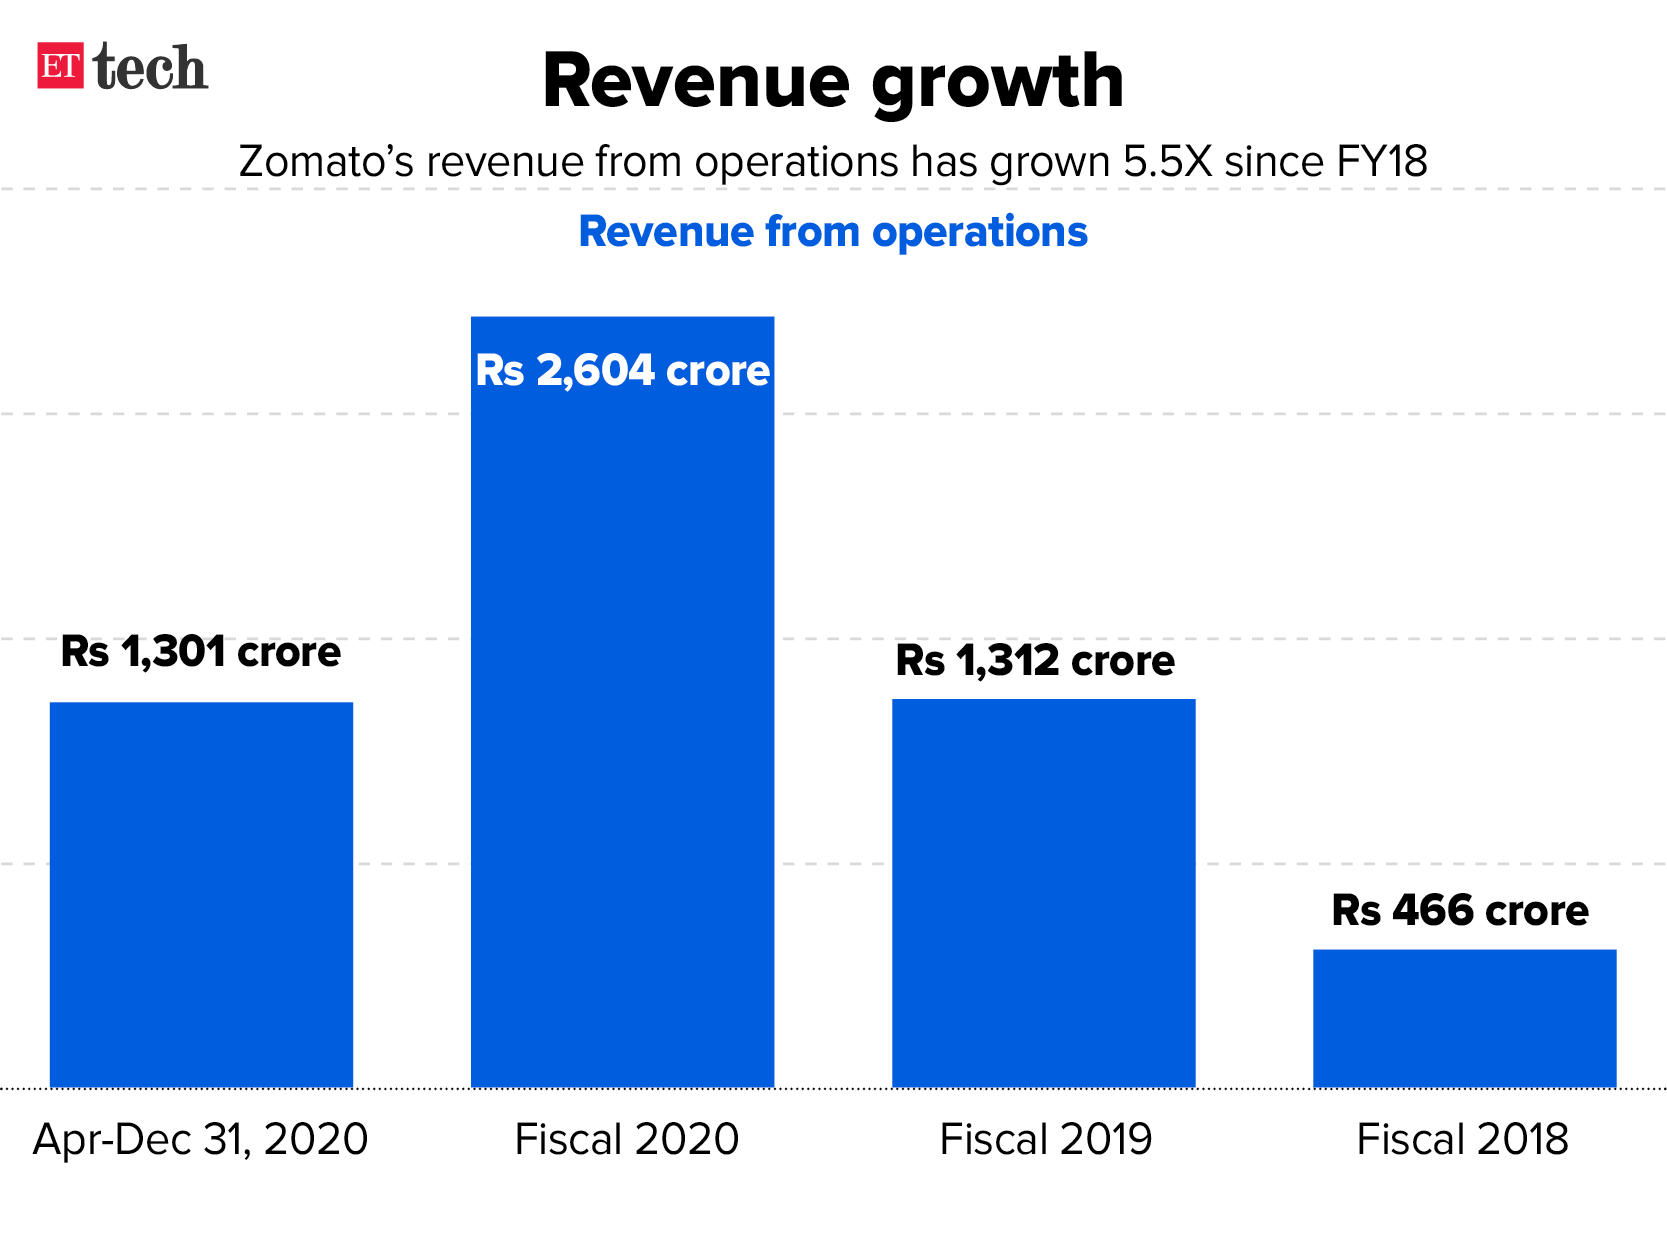 Zomato revenue growth